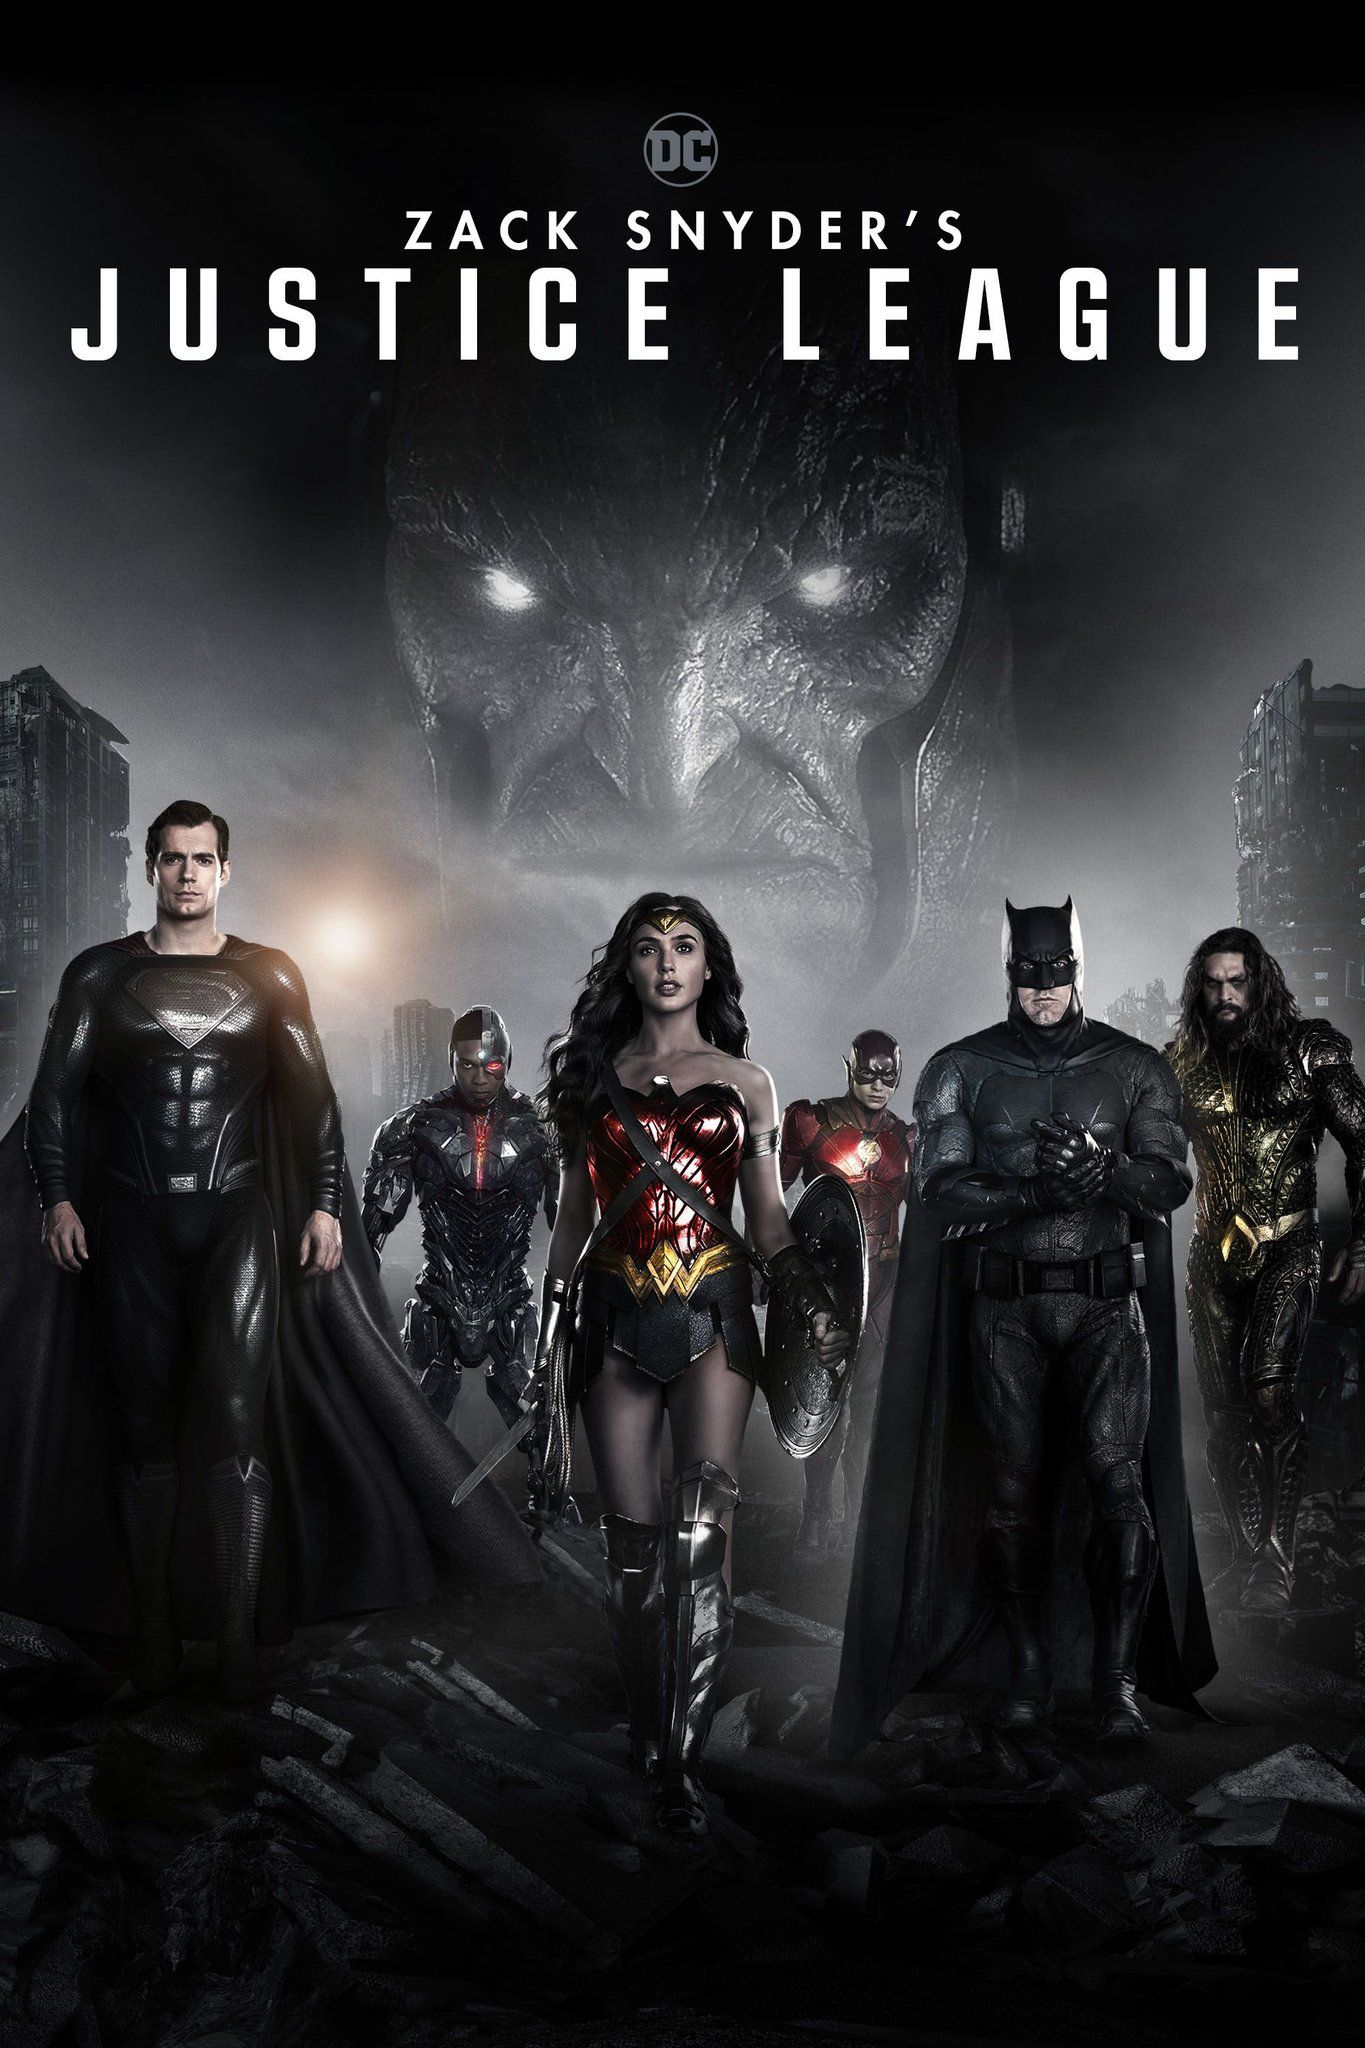 Zack Snyder's Justice League - Film (2021) streaming VF gratuit complet